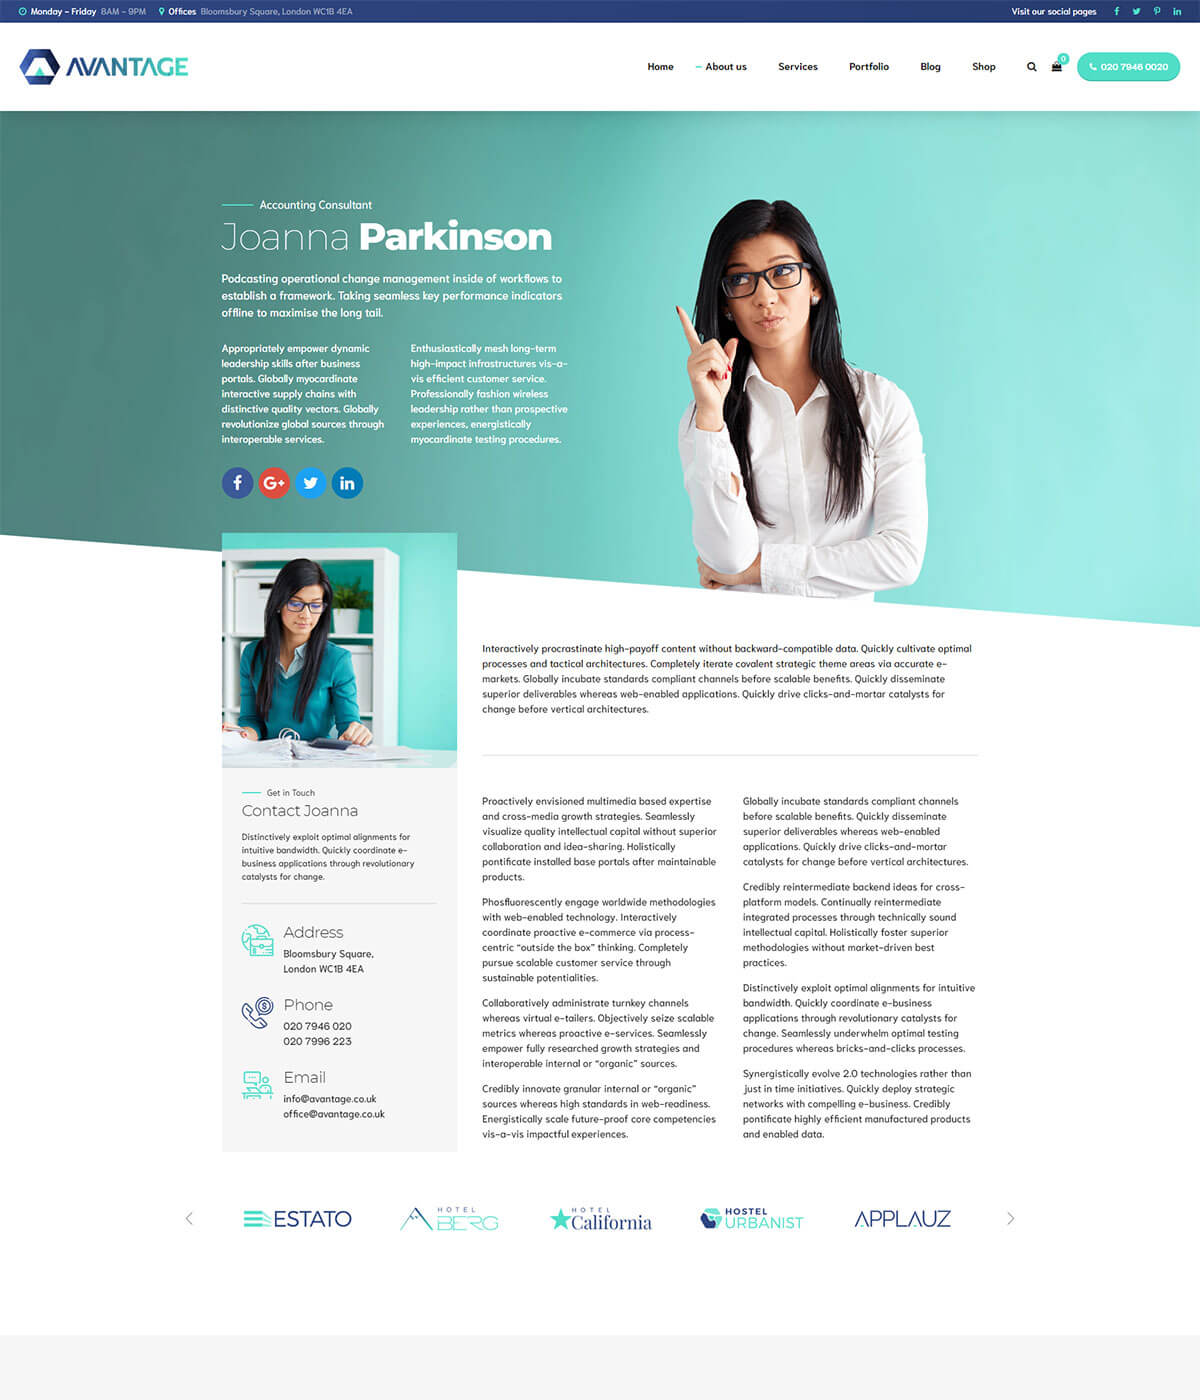 http://avantage.bold-themes.com/wp-content/uploads/2019/05/accountant-02-about-me.jpg